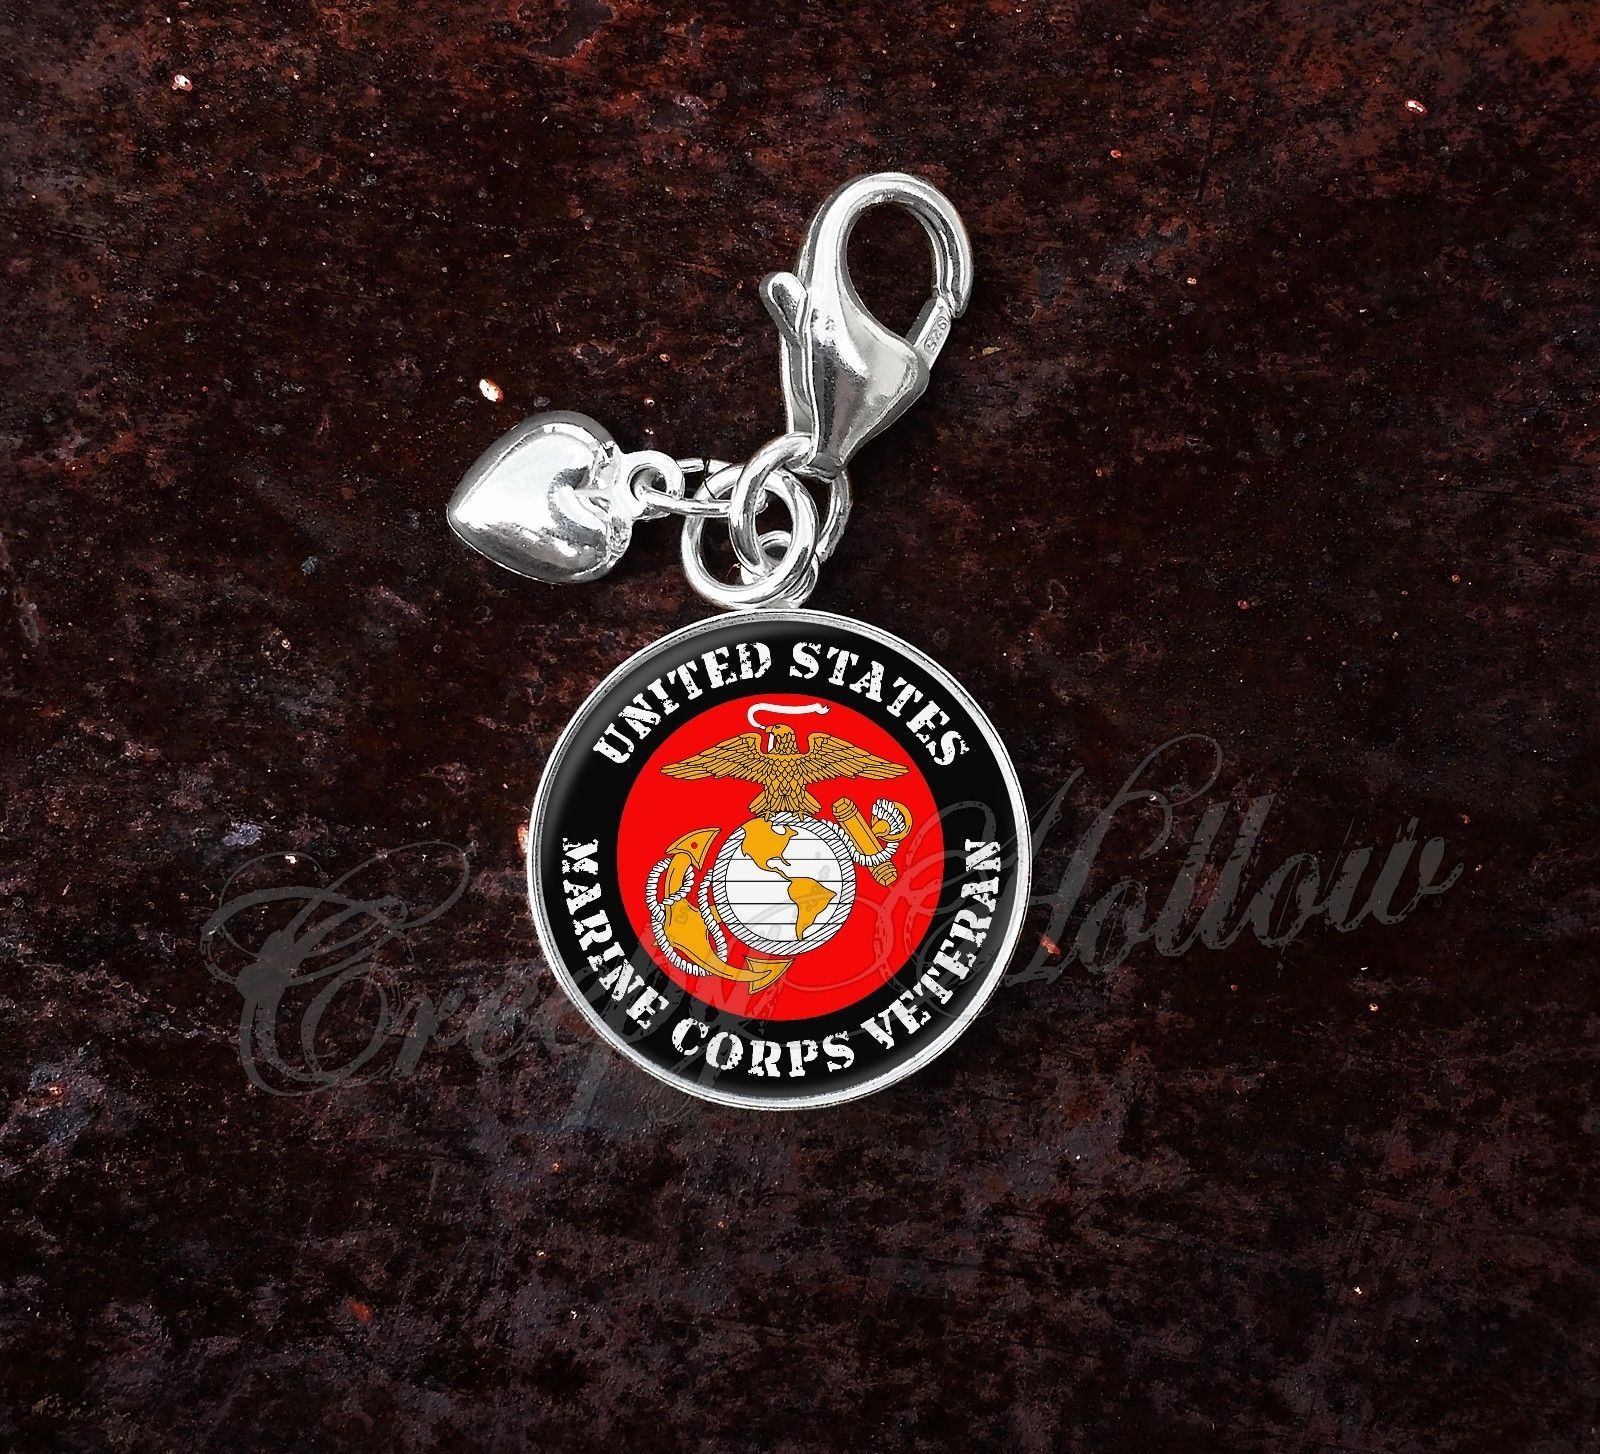 925 Sterling Silver Charm United States Marine Corps Veteran